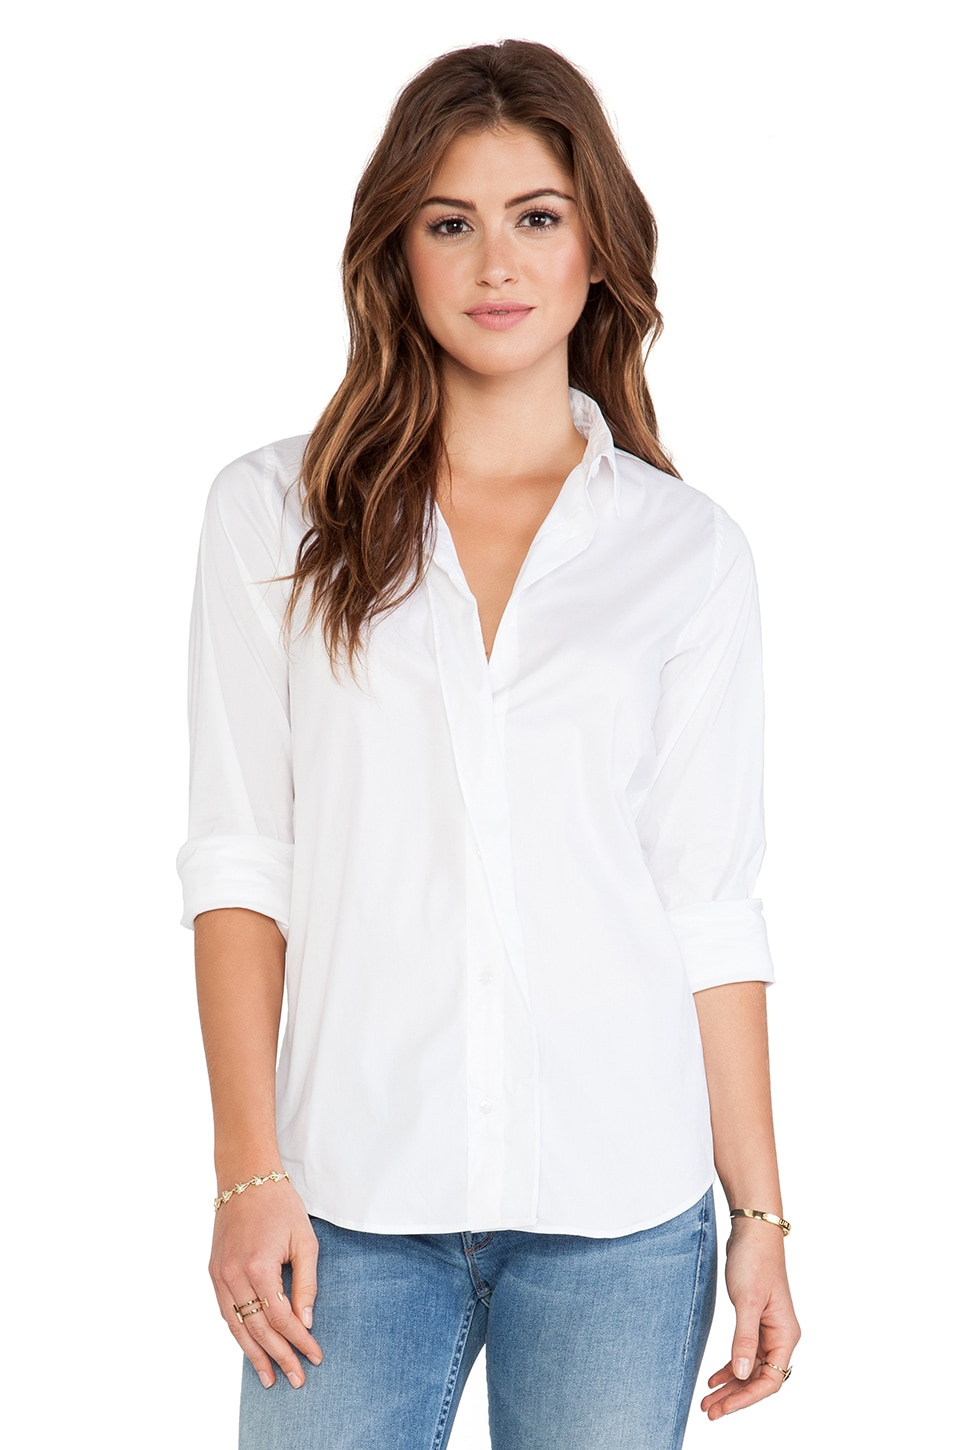 Acquaverde Jill Blouse in White